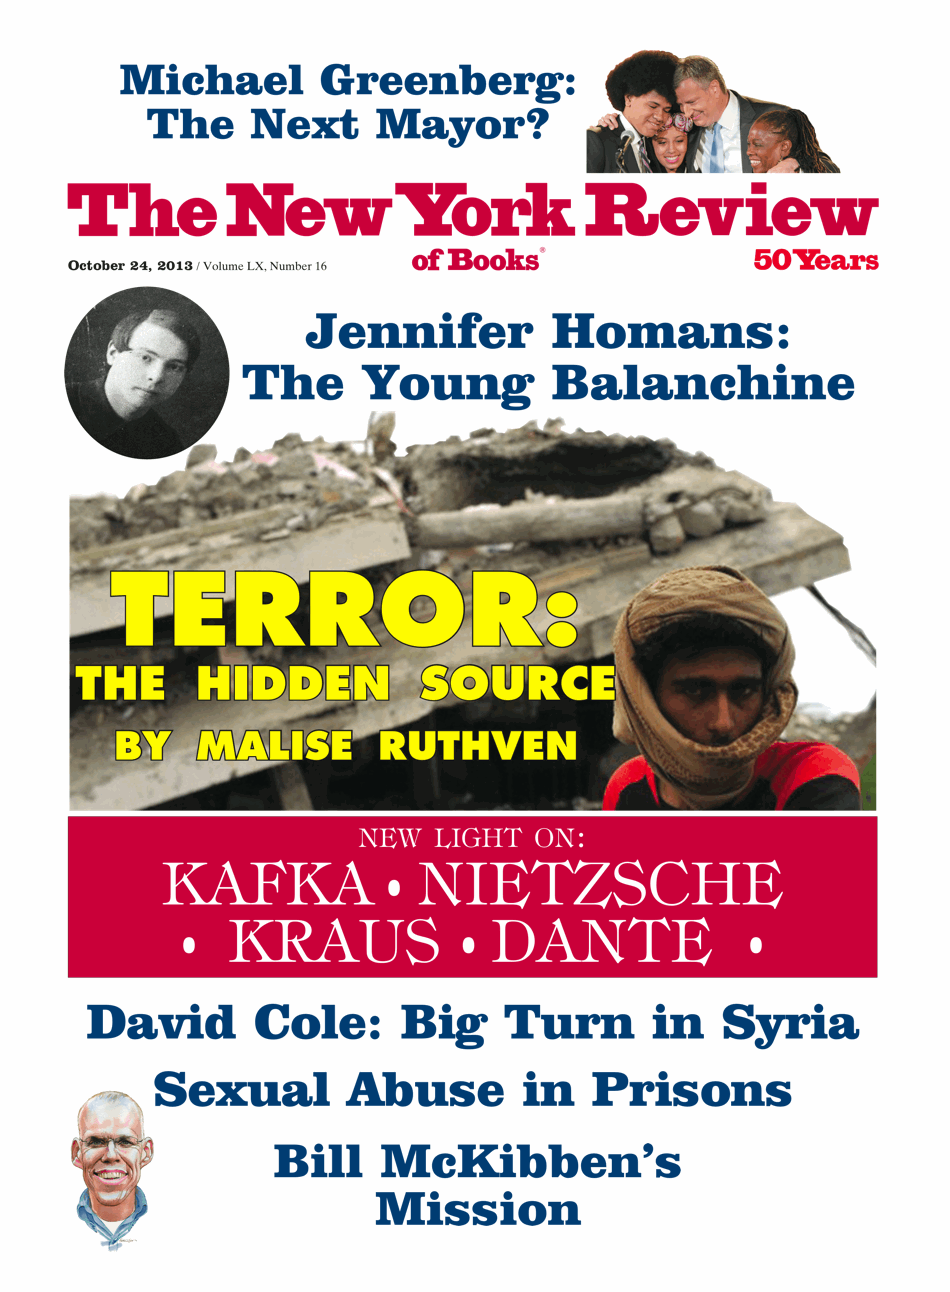 Image of the October 24, 2013 issue cover.